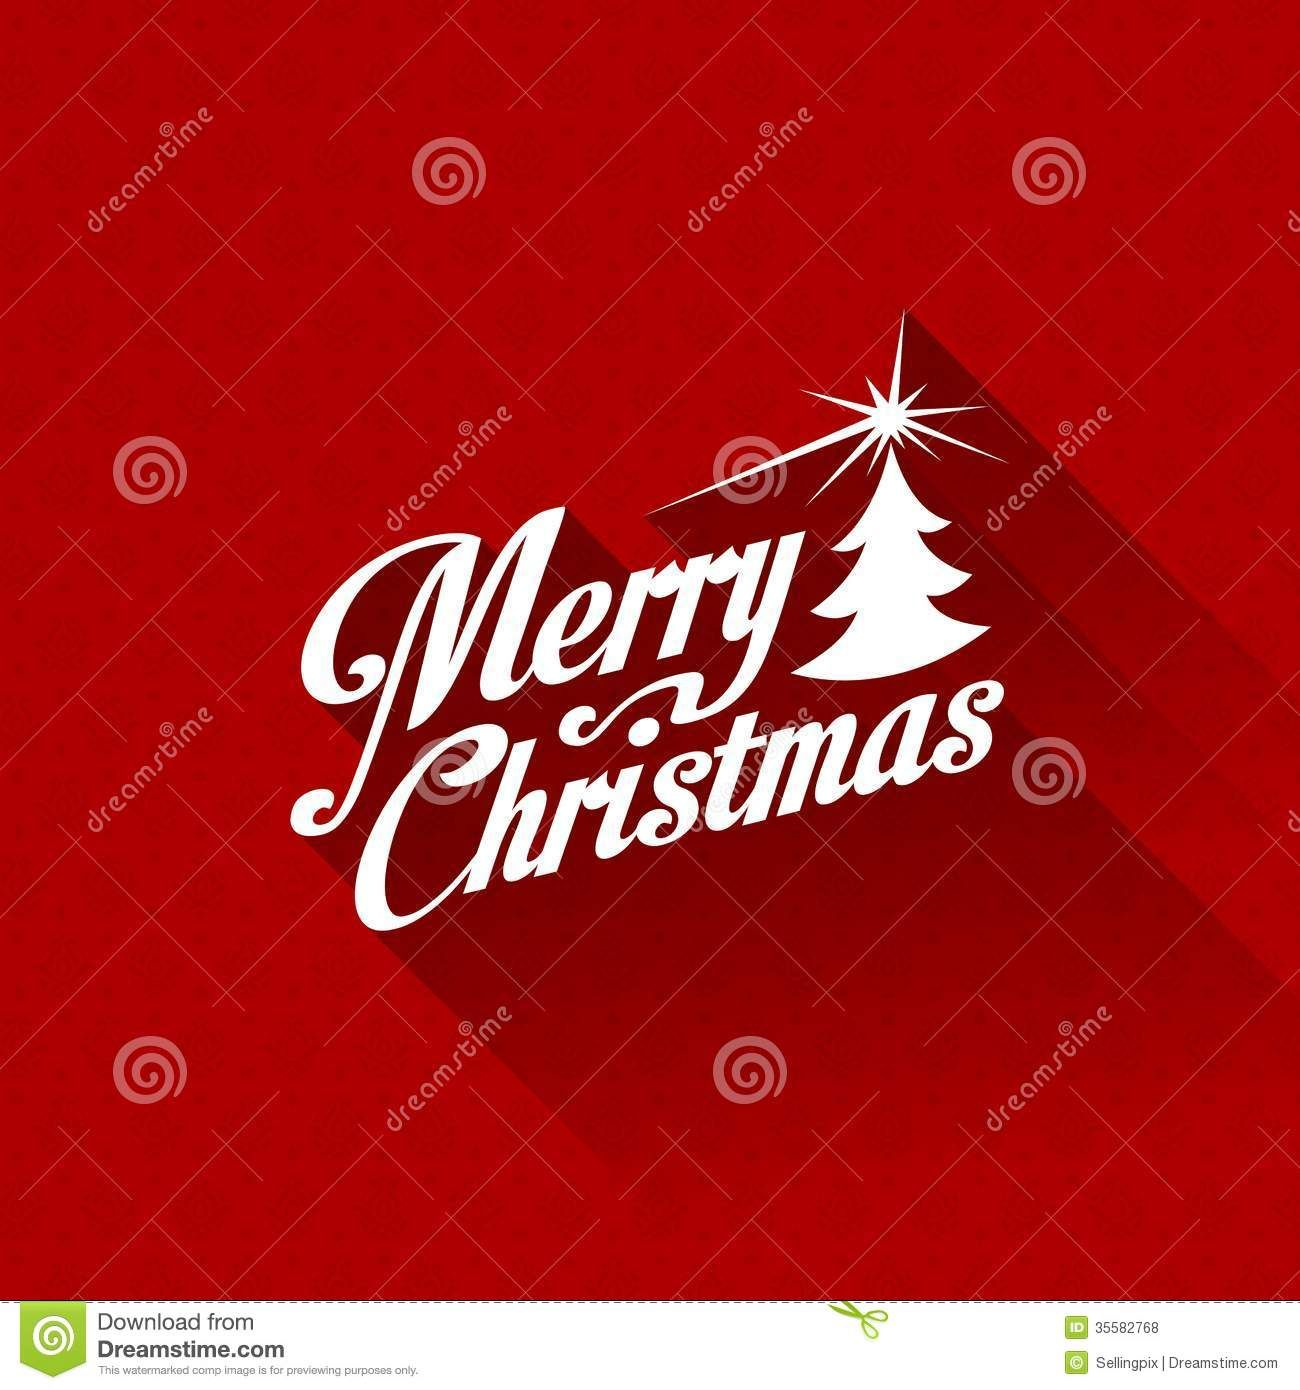 Merry Christmas Greeting Card Vector Design Templa - Download From ...